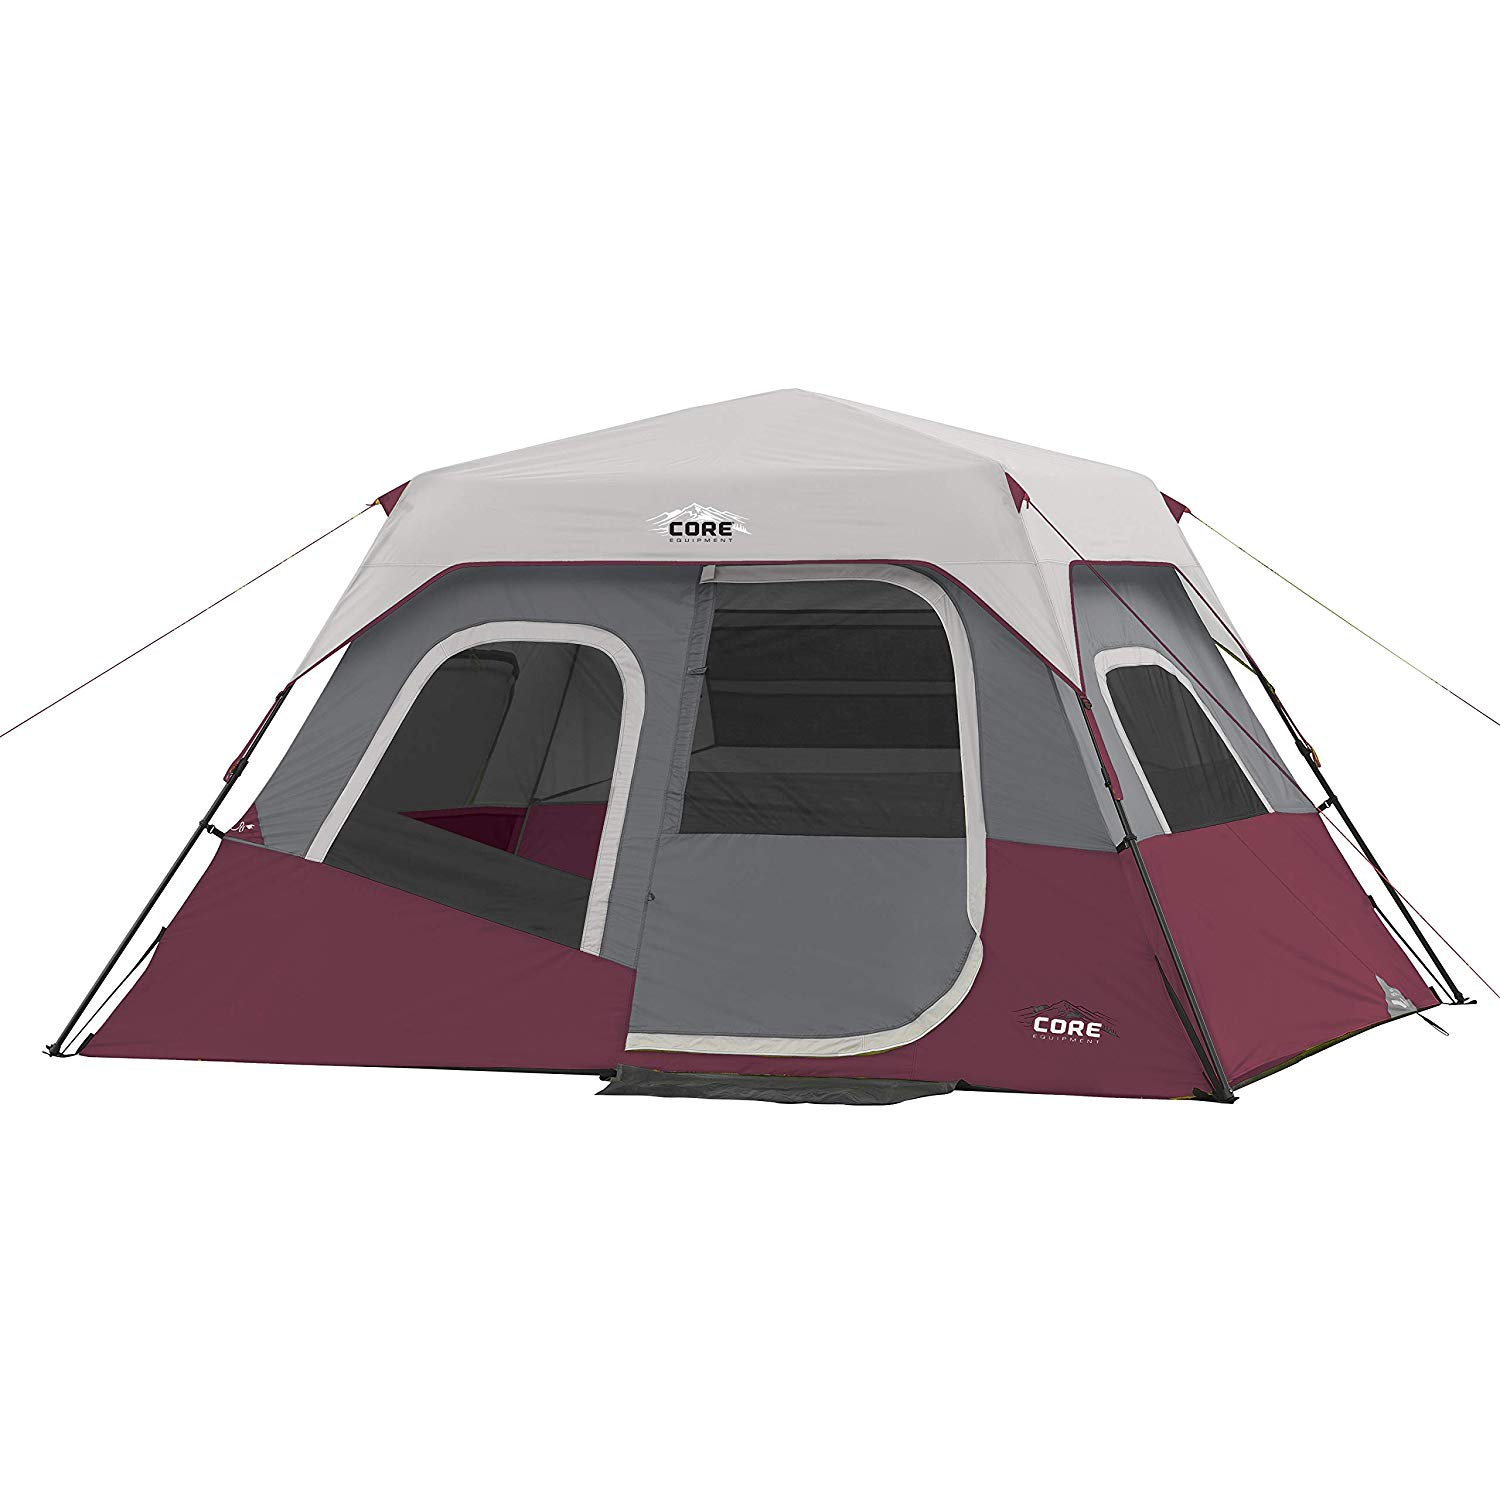 6 people instant tent by Core